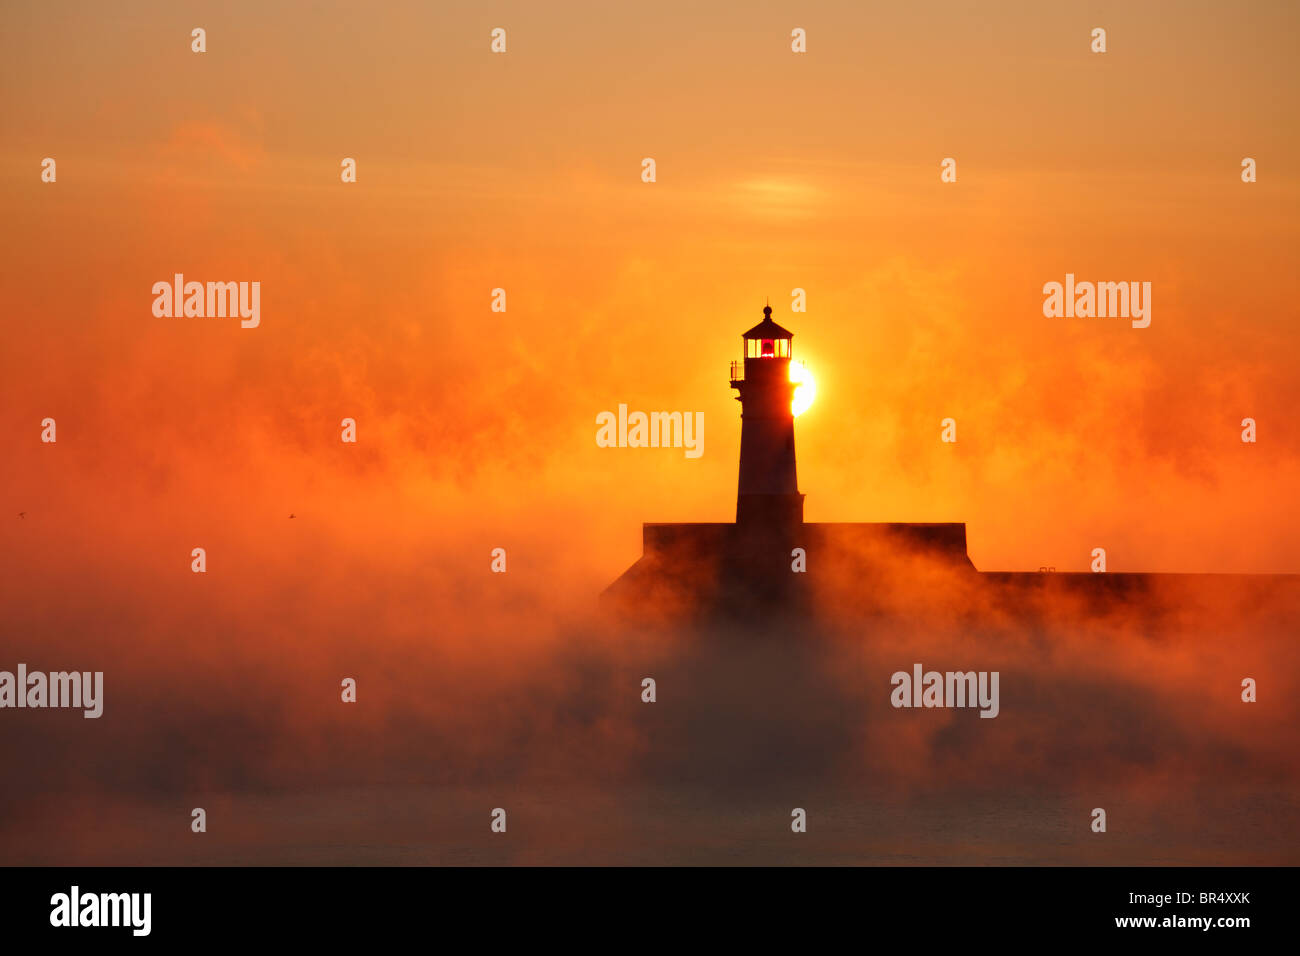 The sun rises behind the north pier lighthouse on Lake Superior in Duluth, Minnesota on a subzero (F) winter morning. - Stock Image